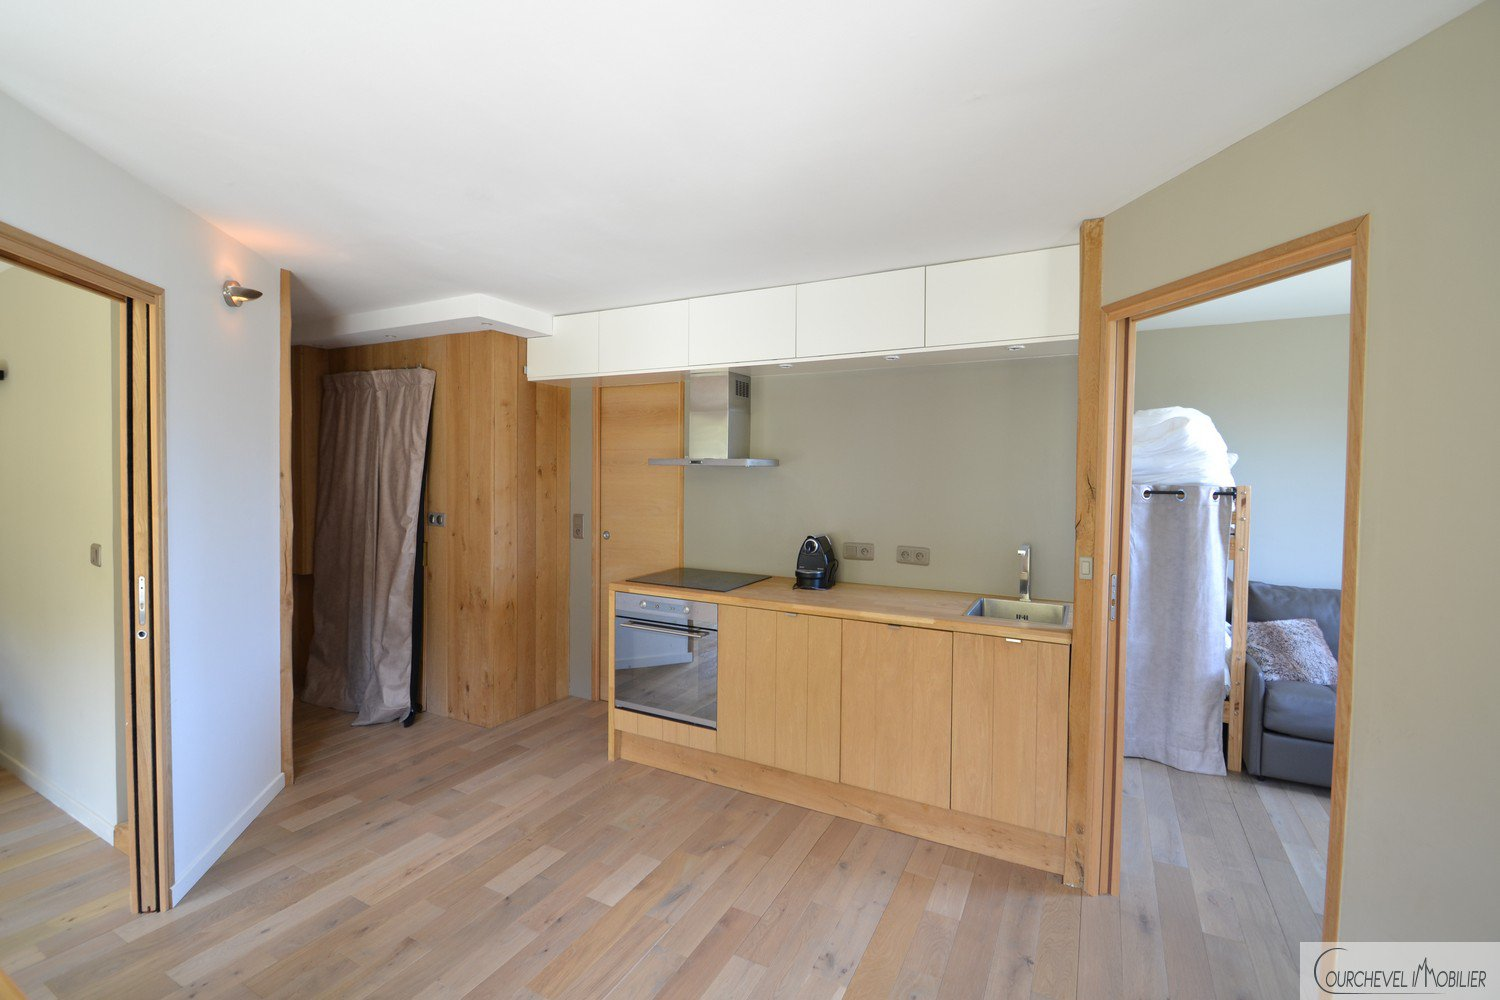 Seizoenhuur Appartement - Courchevel